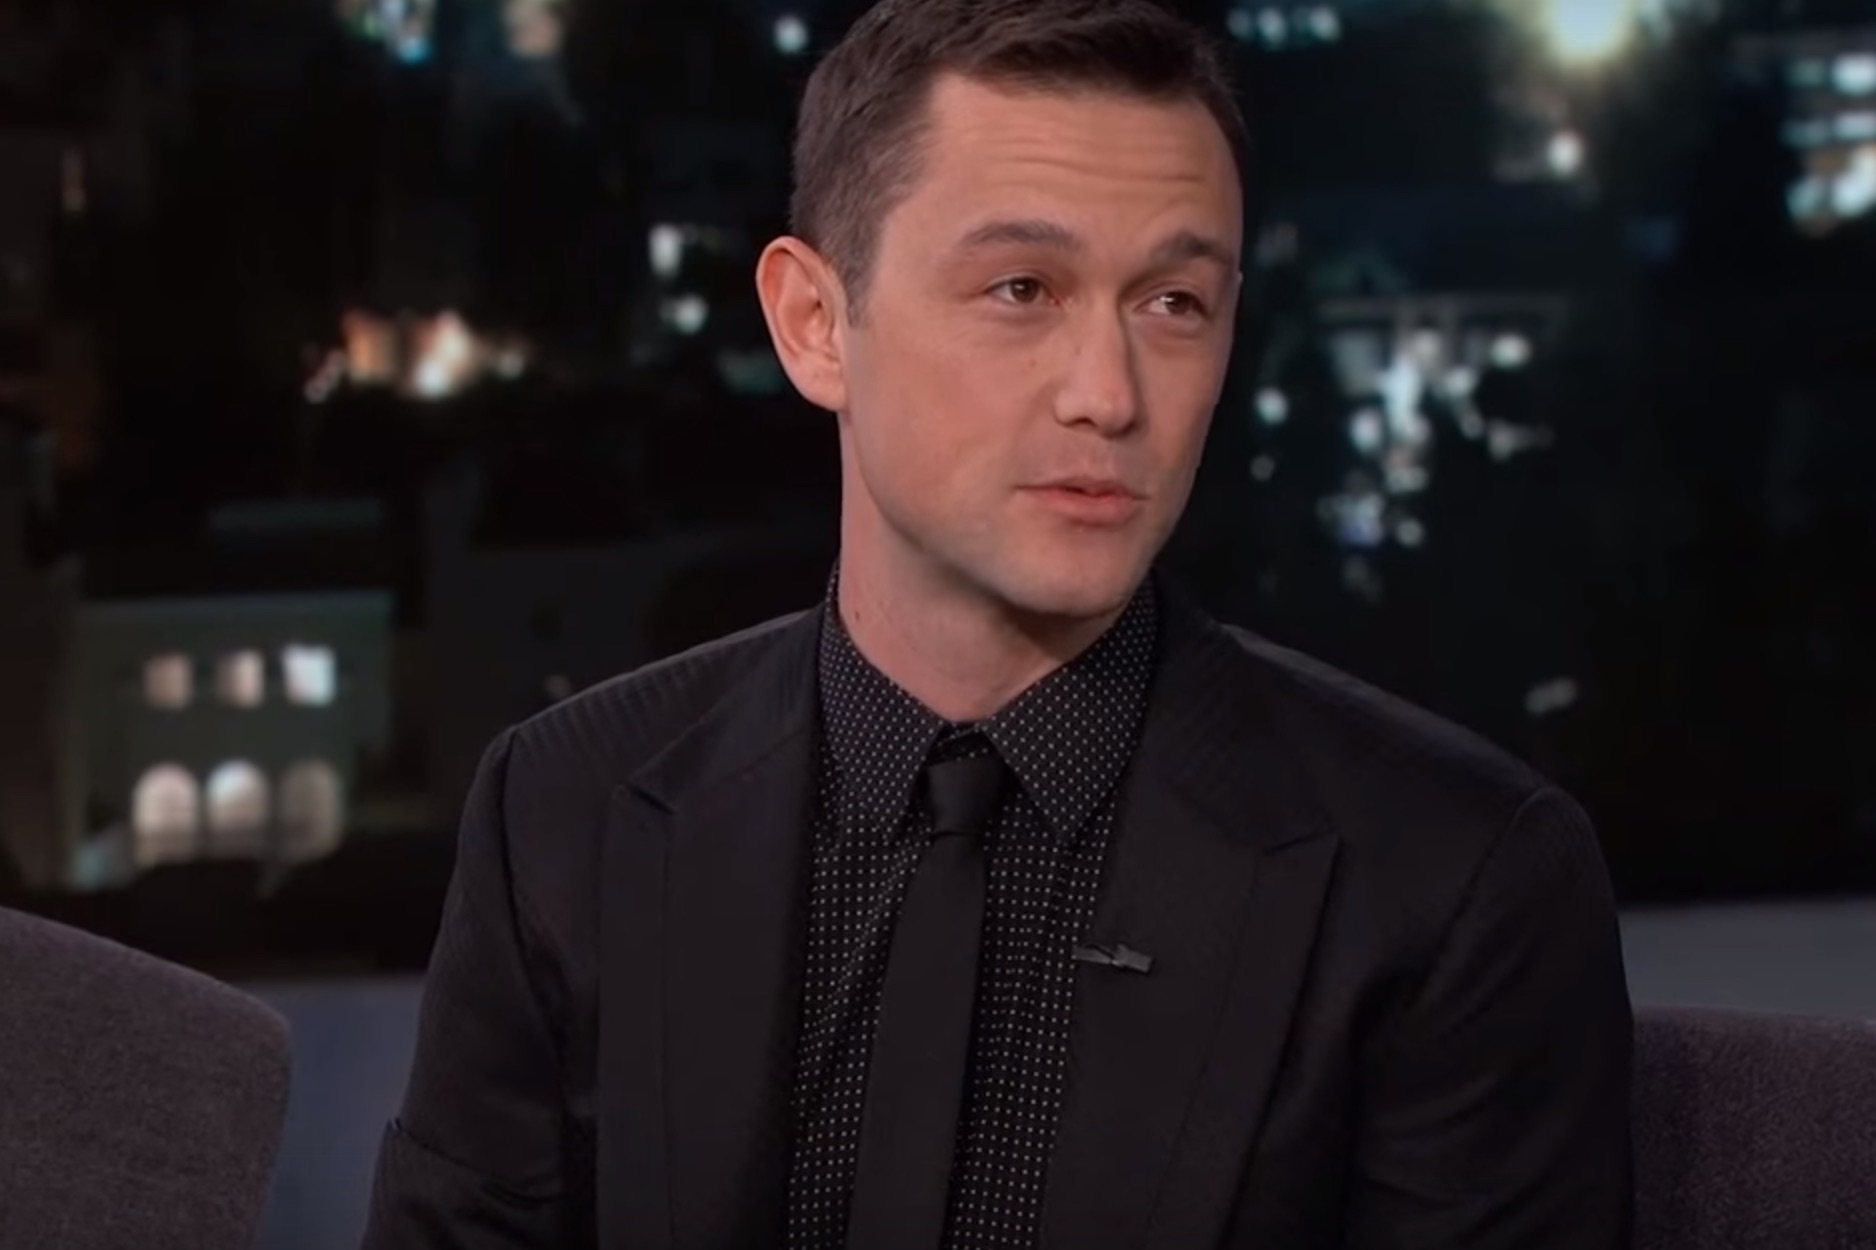 Joseph Gordon-Levitt shares what it was REALLY like to sing with Miley Cyrus